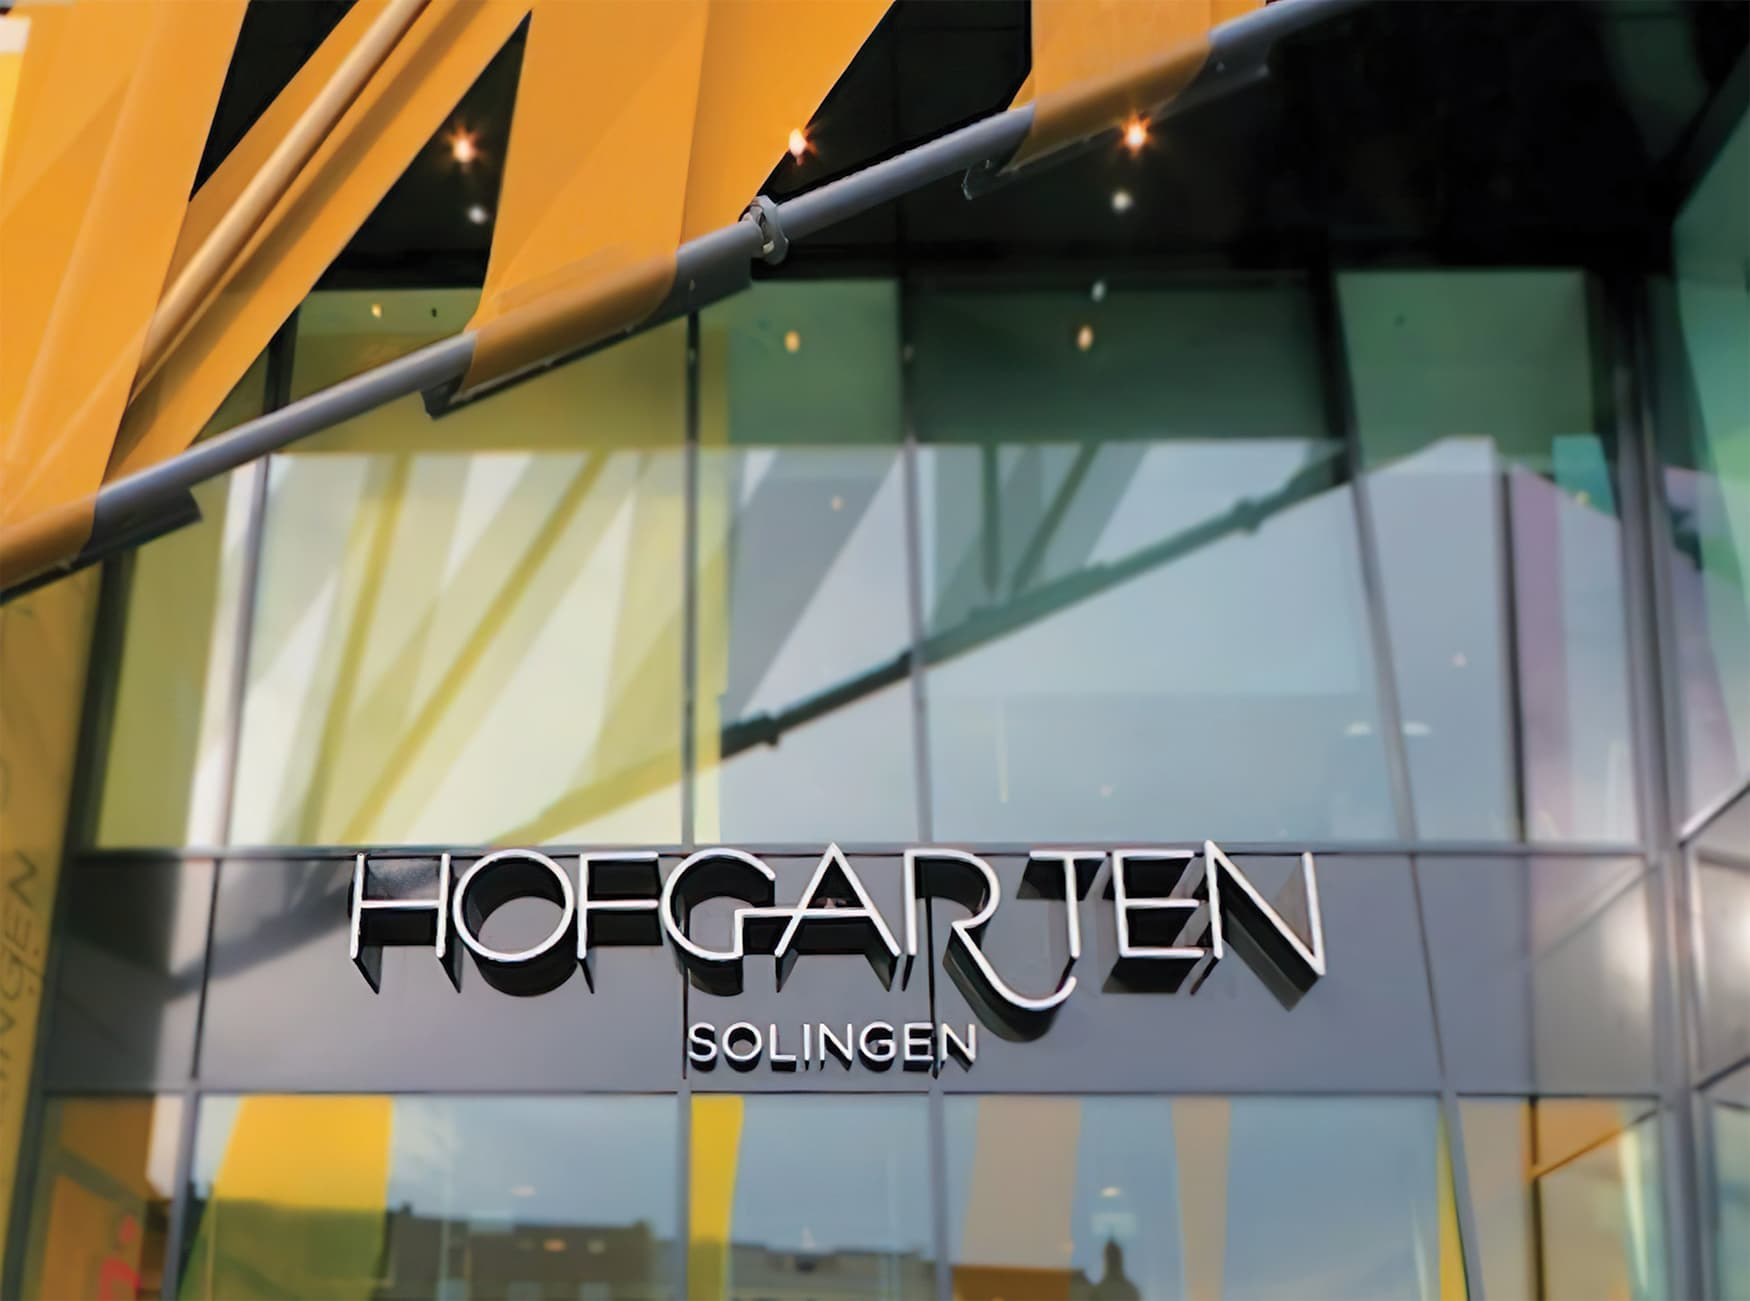 Hofgarten, a retail project in Solingen Germany, project identity illuminated signage design.